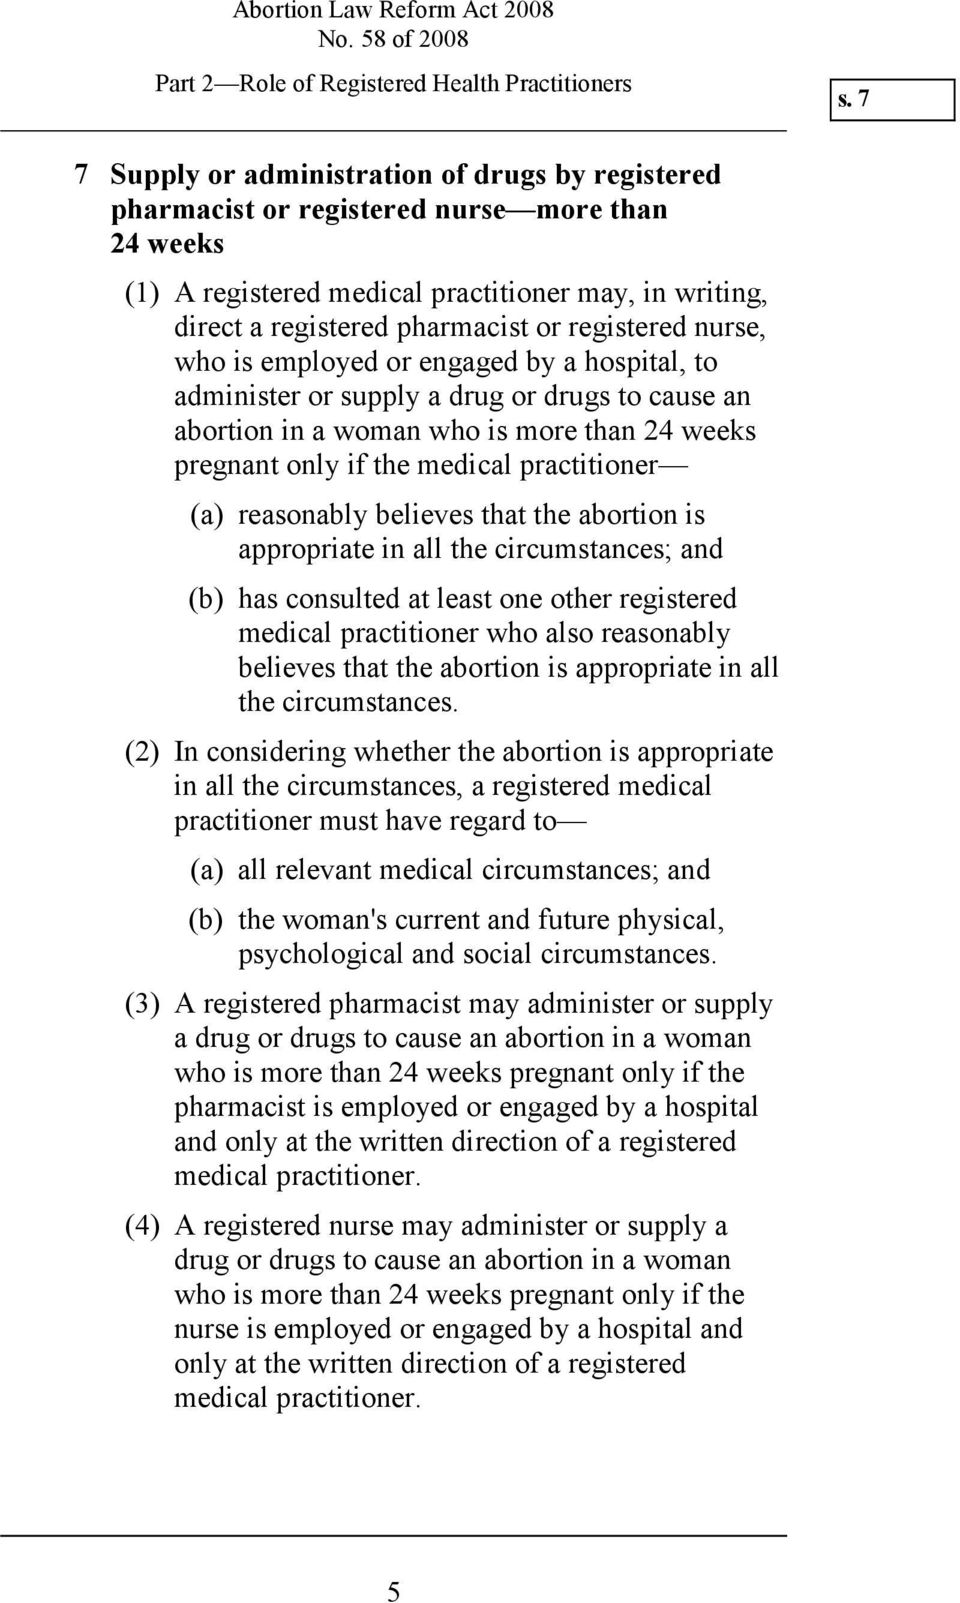 registered nurse, who is employed or engaged by a hospital, to administer or supply a drug or drugs to cause an abortion in a woman who is more than 24 weeks pregnant only if the medical practitioner